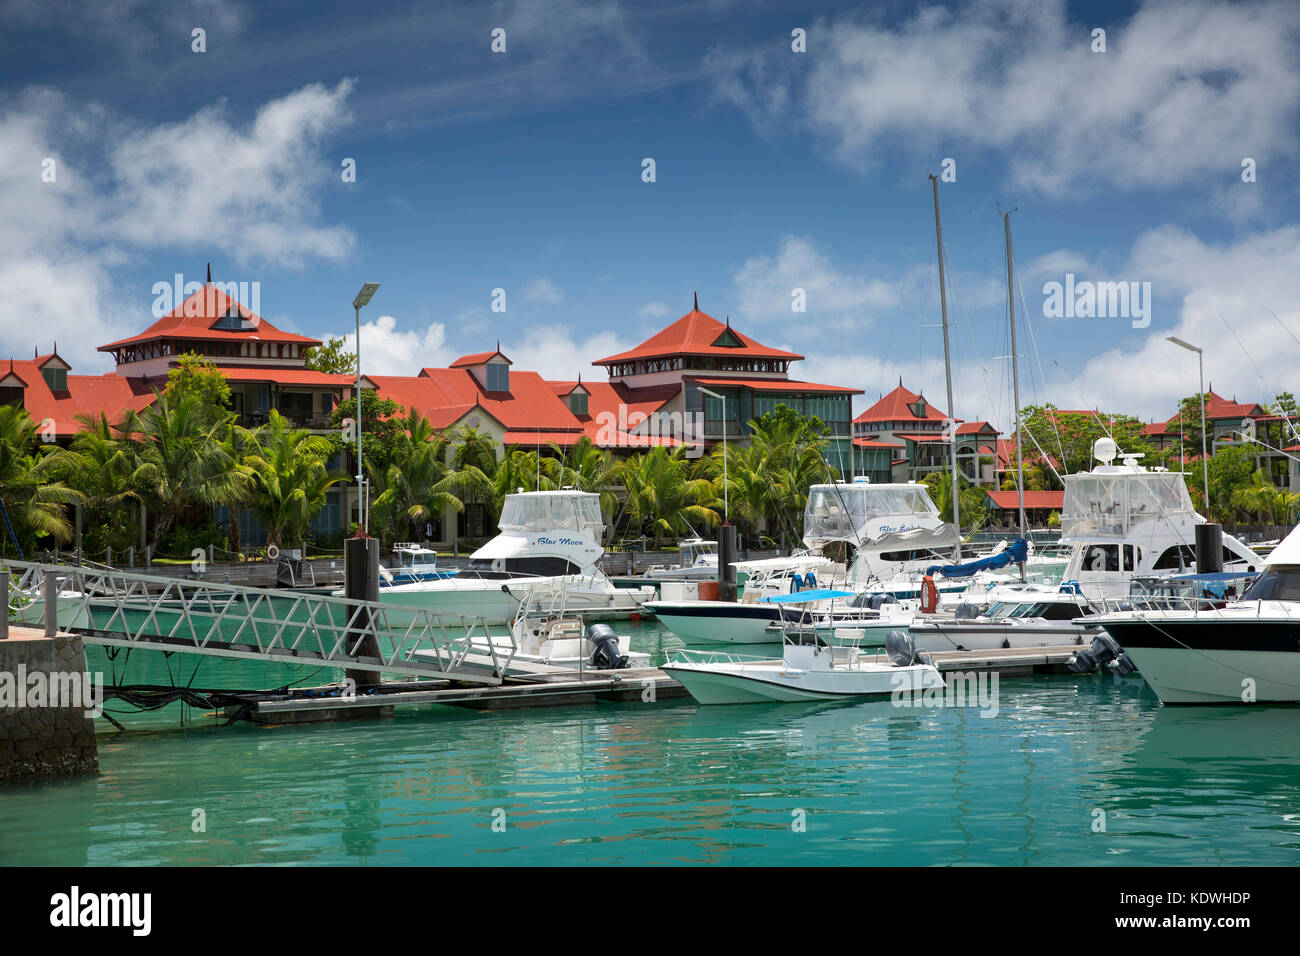 The Seychelles, Mahe, Victoria, Eden Island, housing on reclaimed land and boats moored in marina - Stock Image